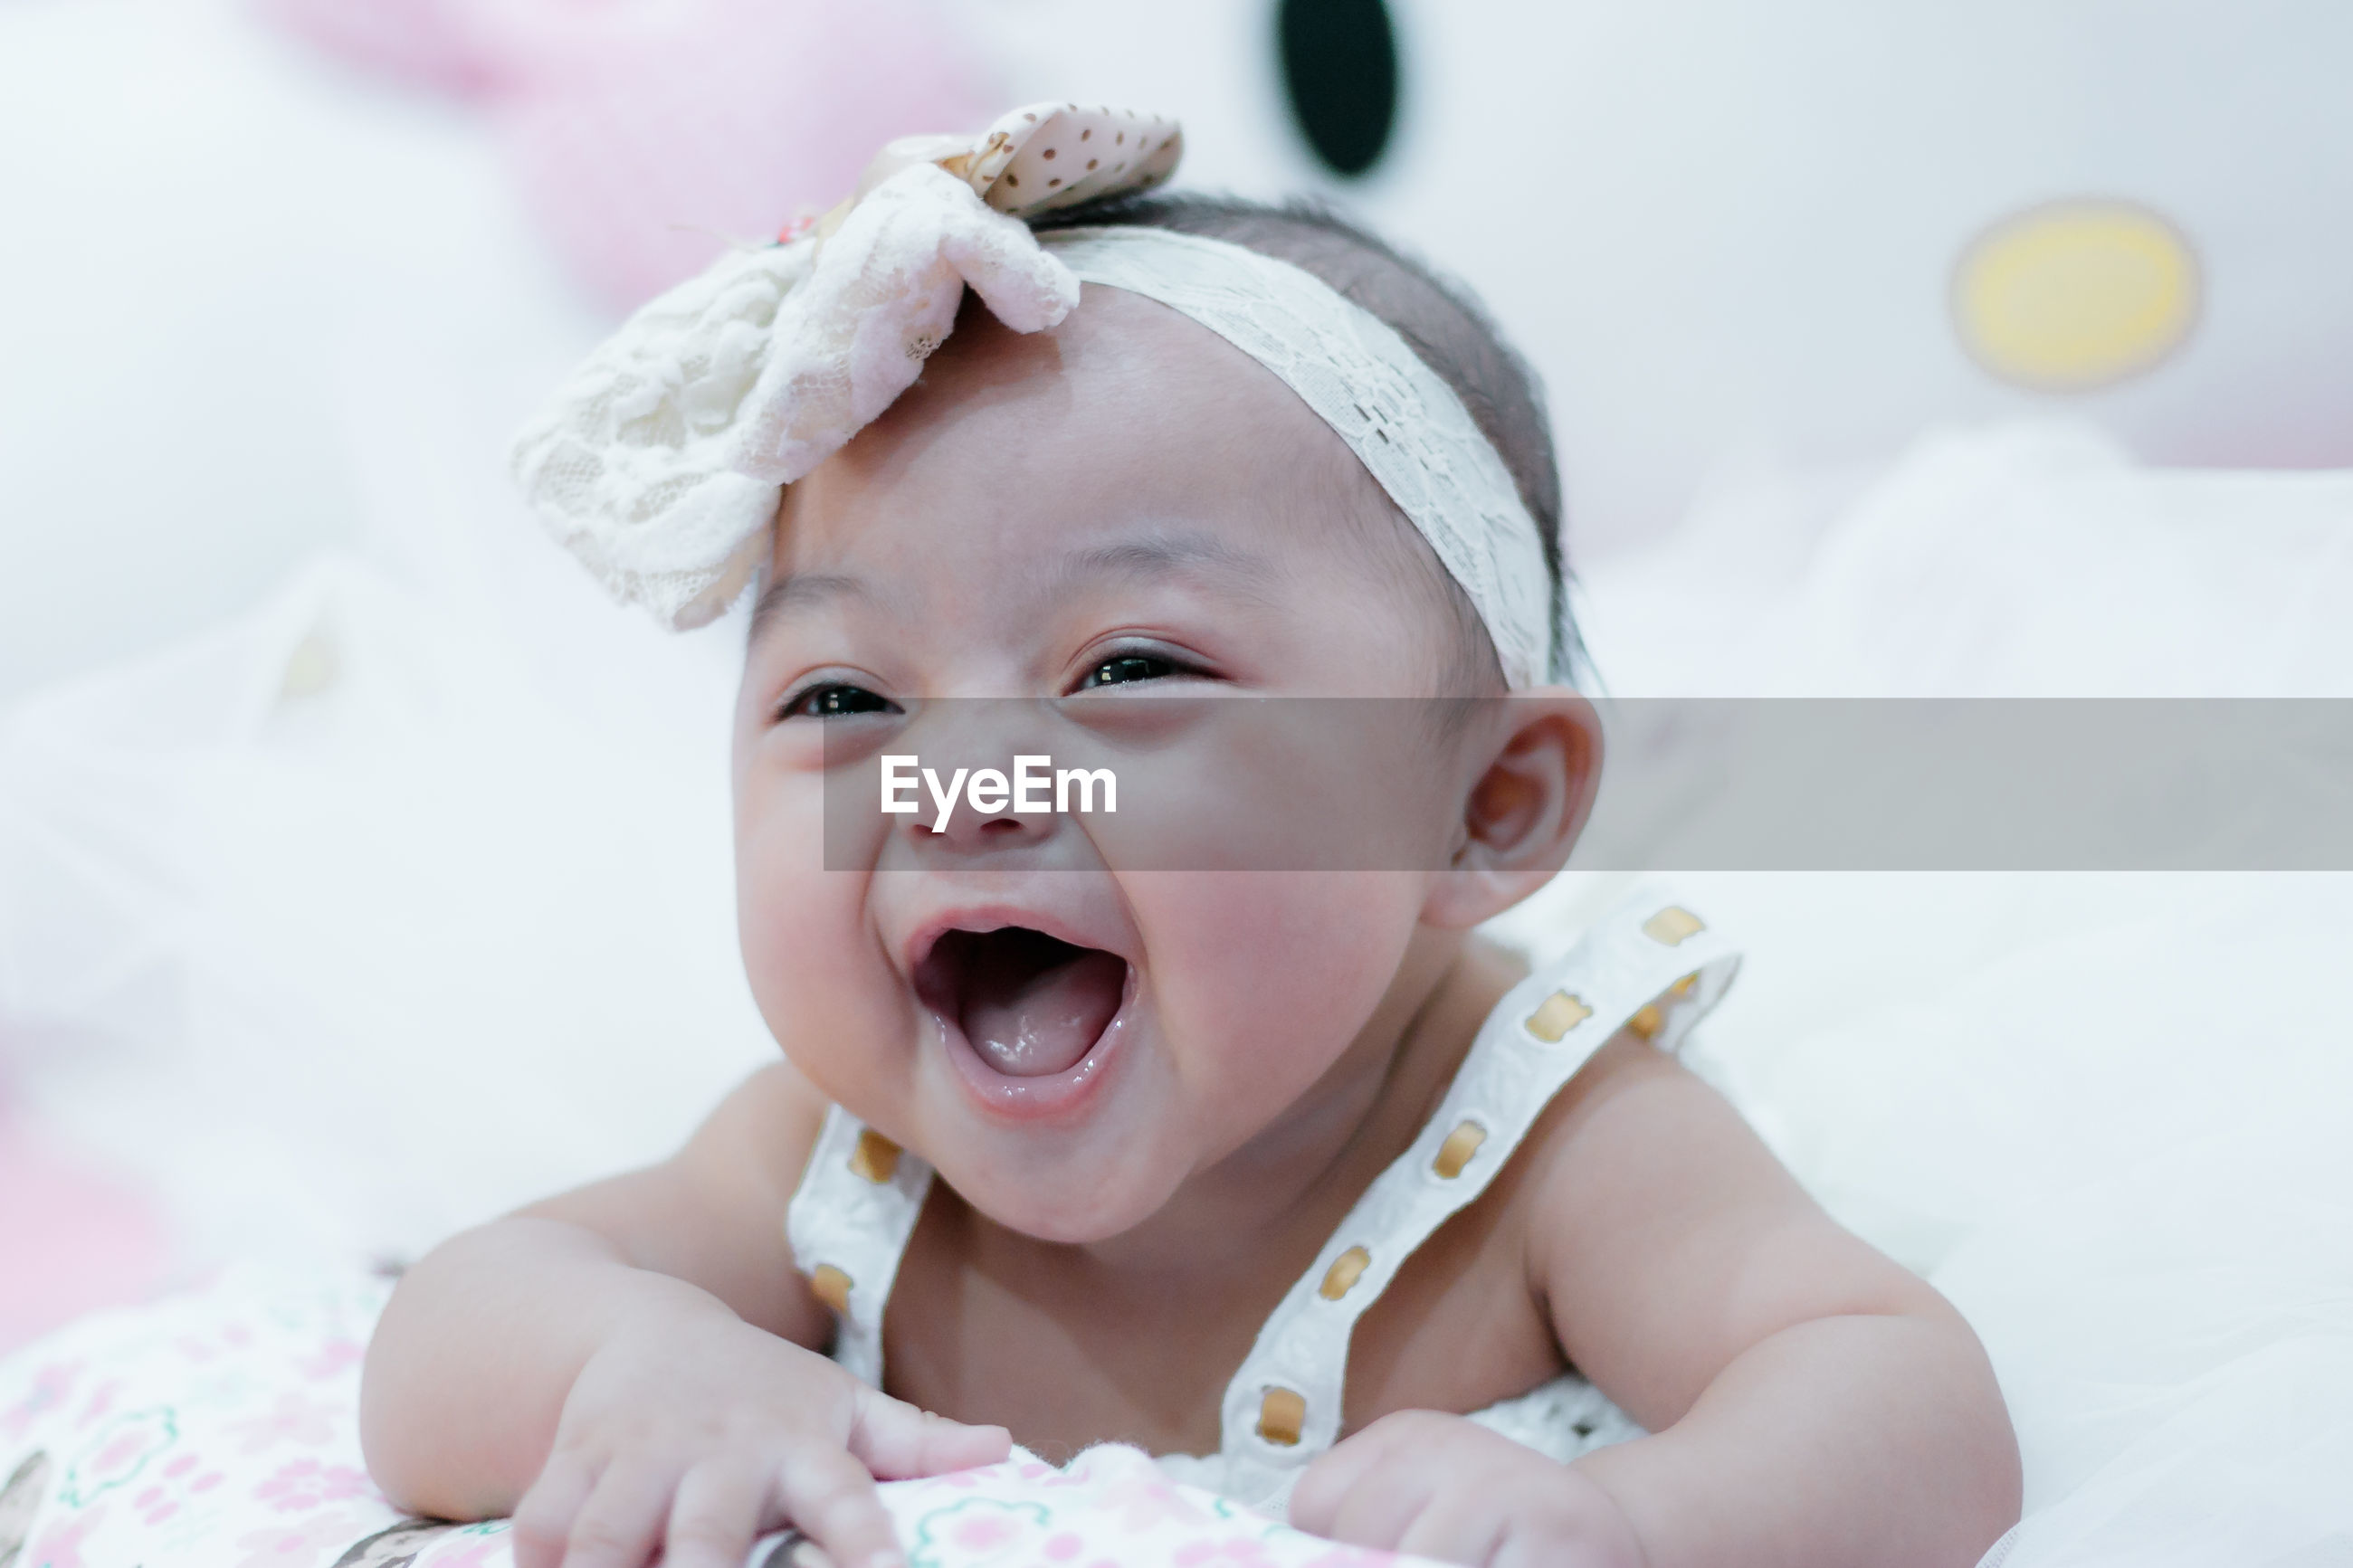 Close-up of cute baby girl on bed